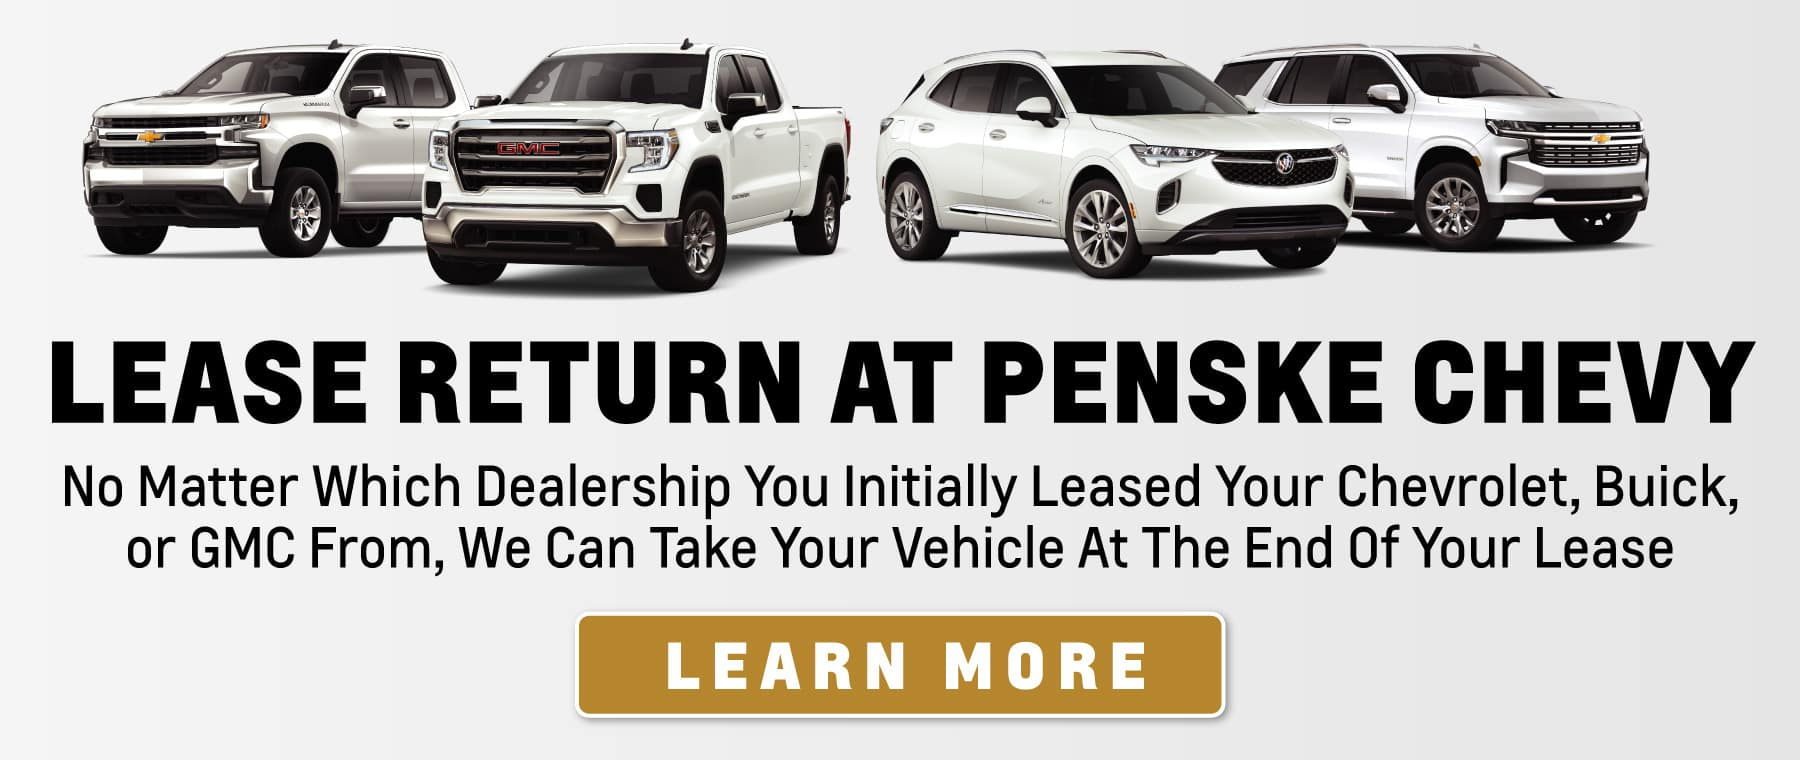 Lease Return - No Matter Where You Initially Leased Your Chevy, Buick or GMC, We Can Take It Back